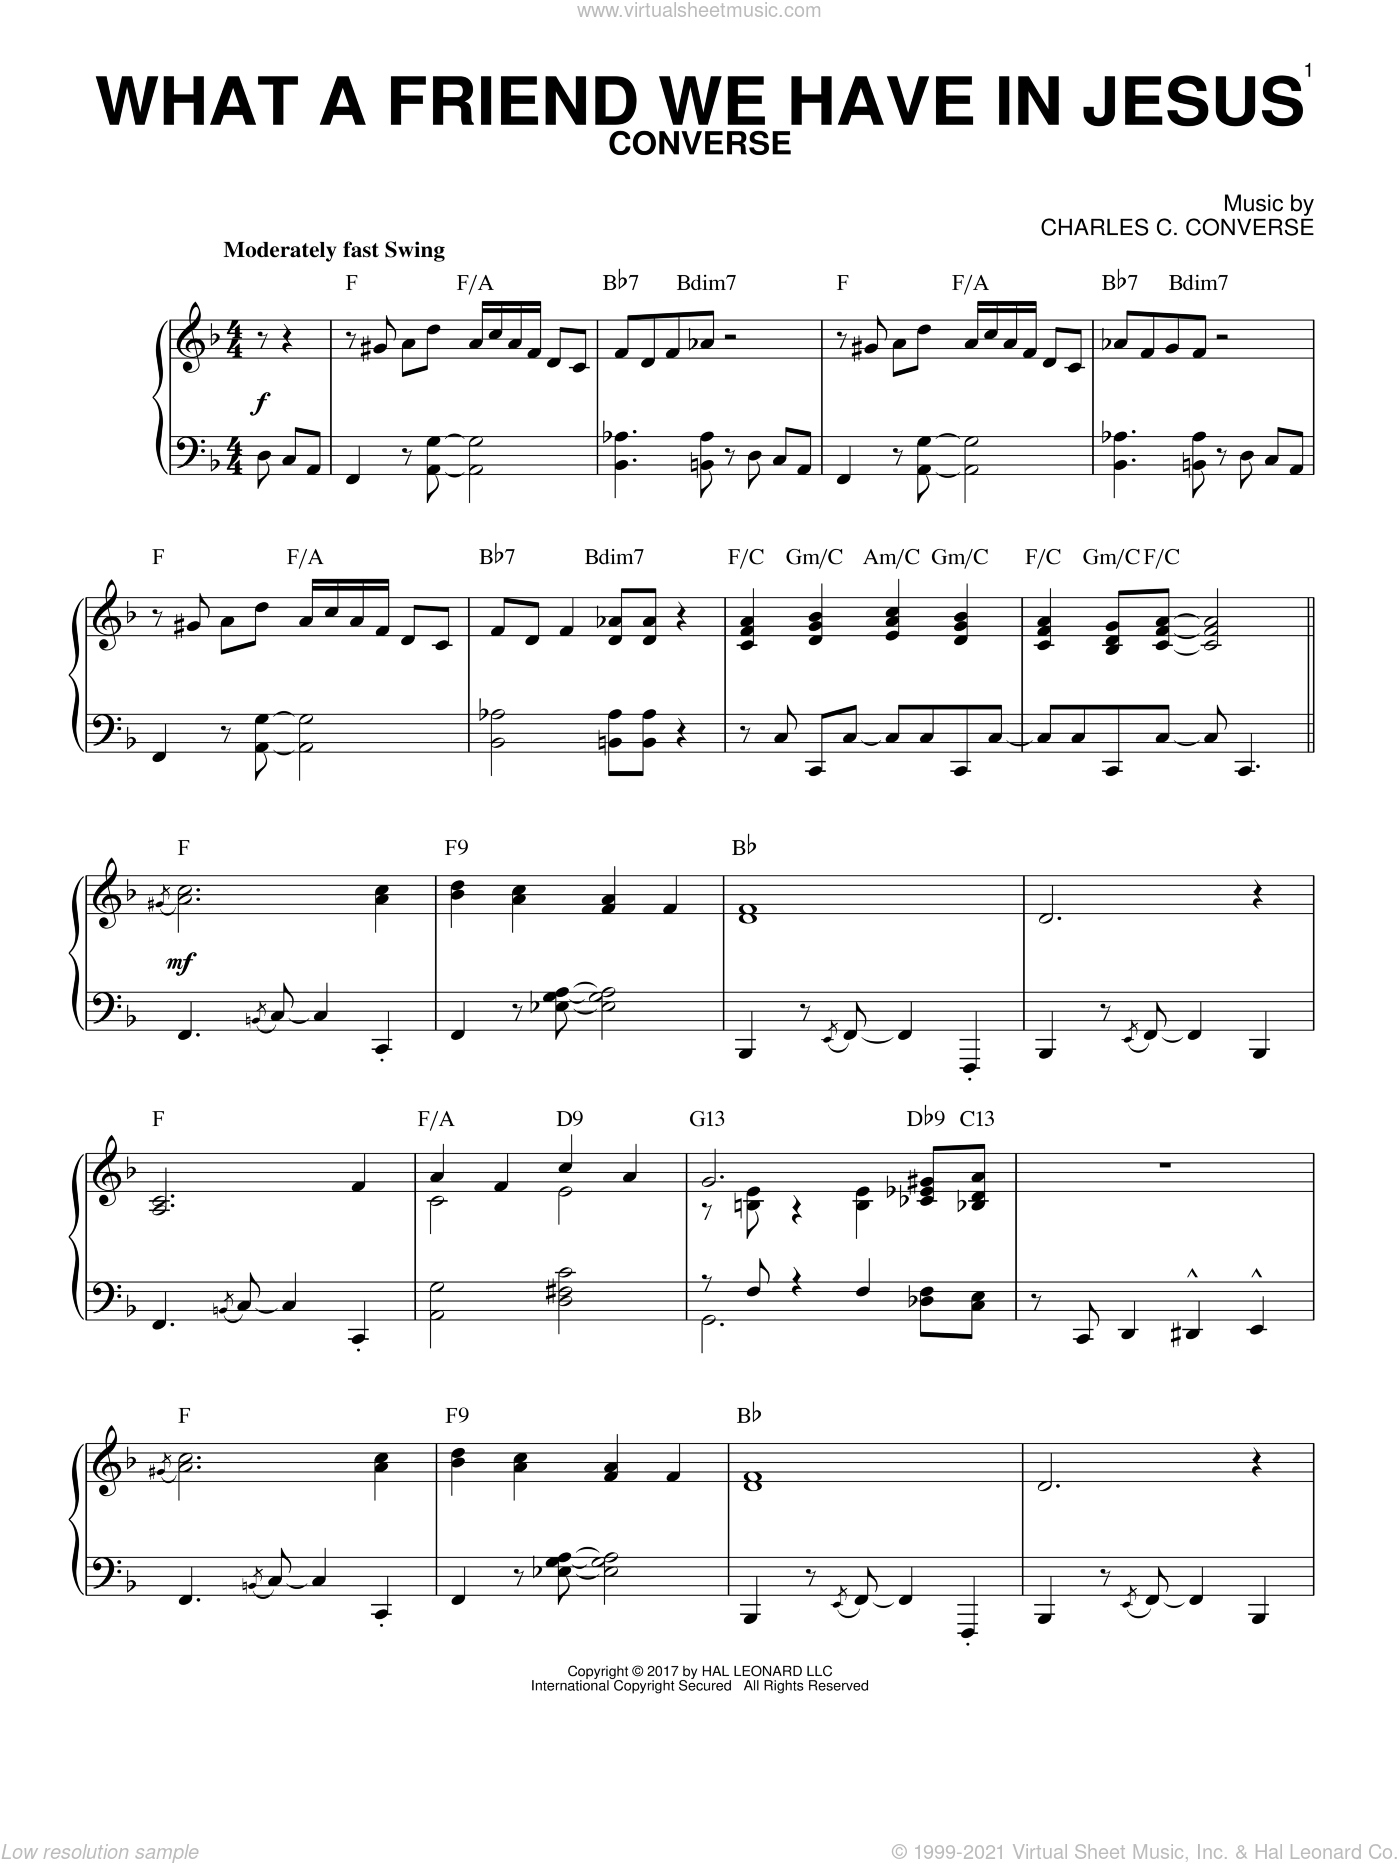 What A Friend We Have In Jesus sheet music for piano solo by Joseph M. Scriven and Charles C. Converse, intermediate skill level